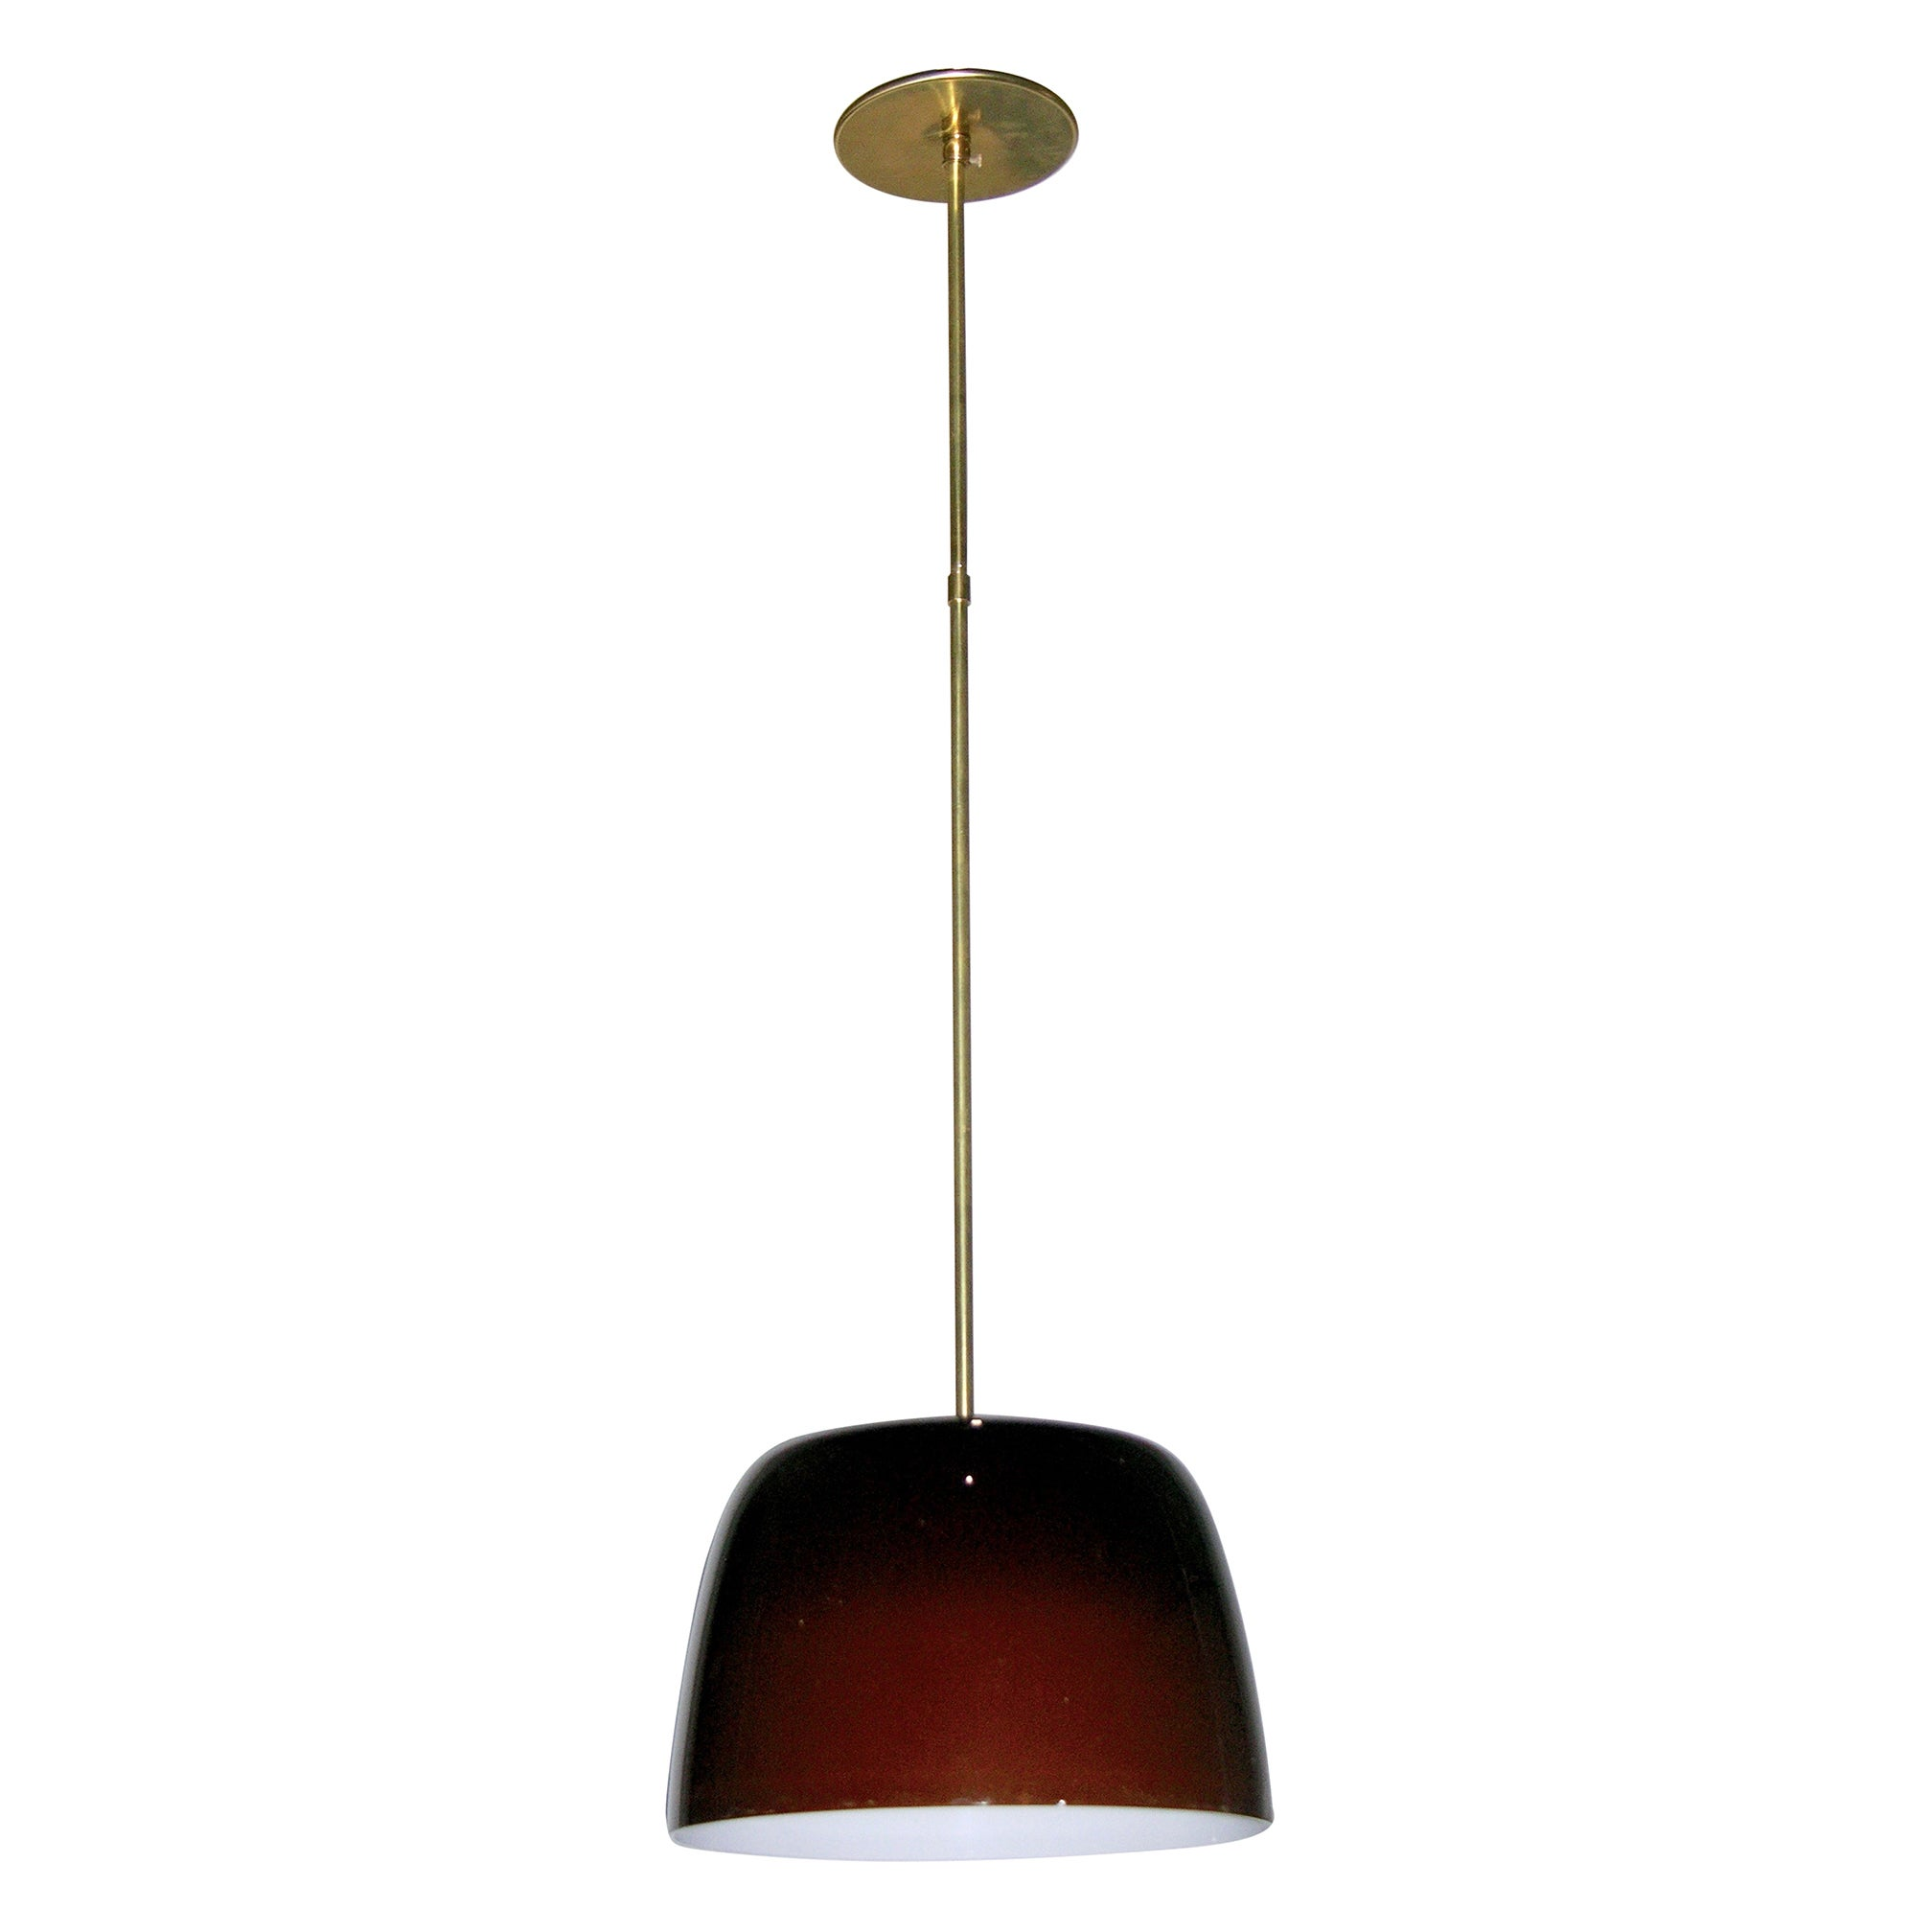 Italian Minimalist Brass and Coffee Brown Murano Glass Pendant Light 1970s